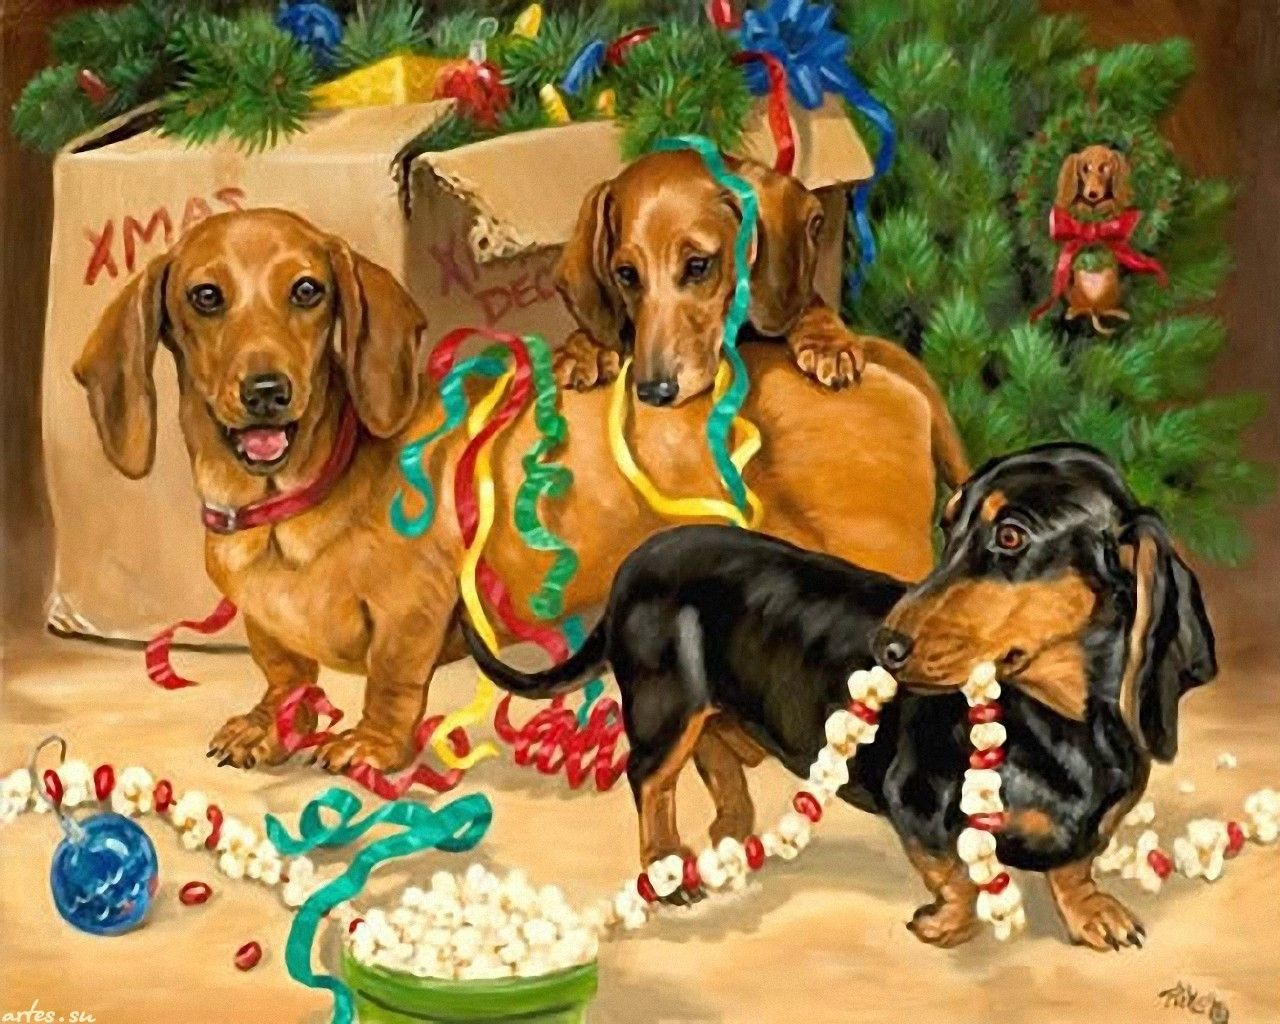 1280x1024 Dogs At Christmas Wallpaper Download Christmas Animals Dachshund Christmas Dachshund Love